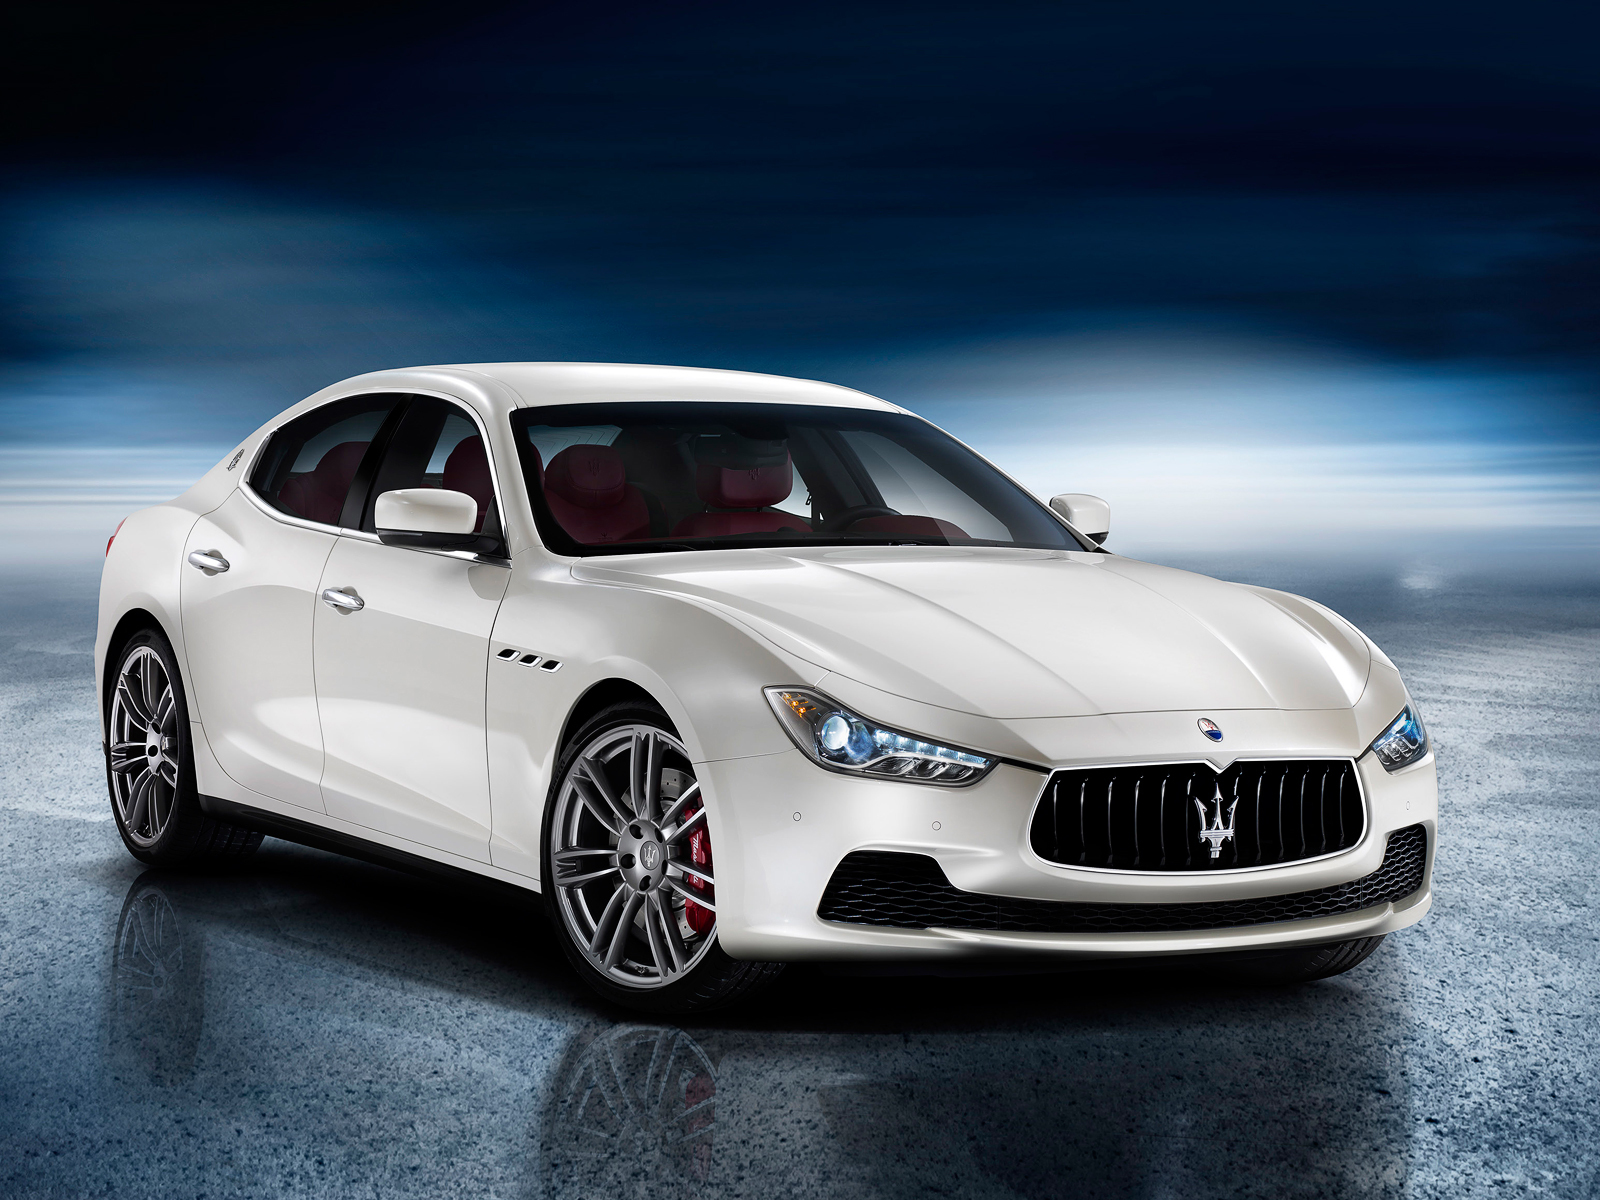 Maserati has declassified its new Ghibli sedan